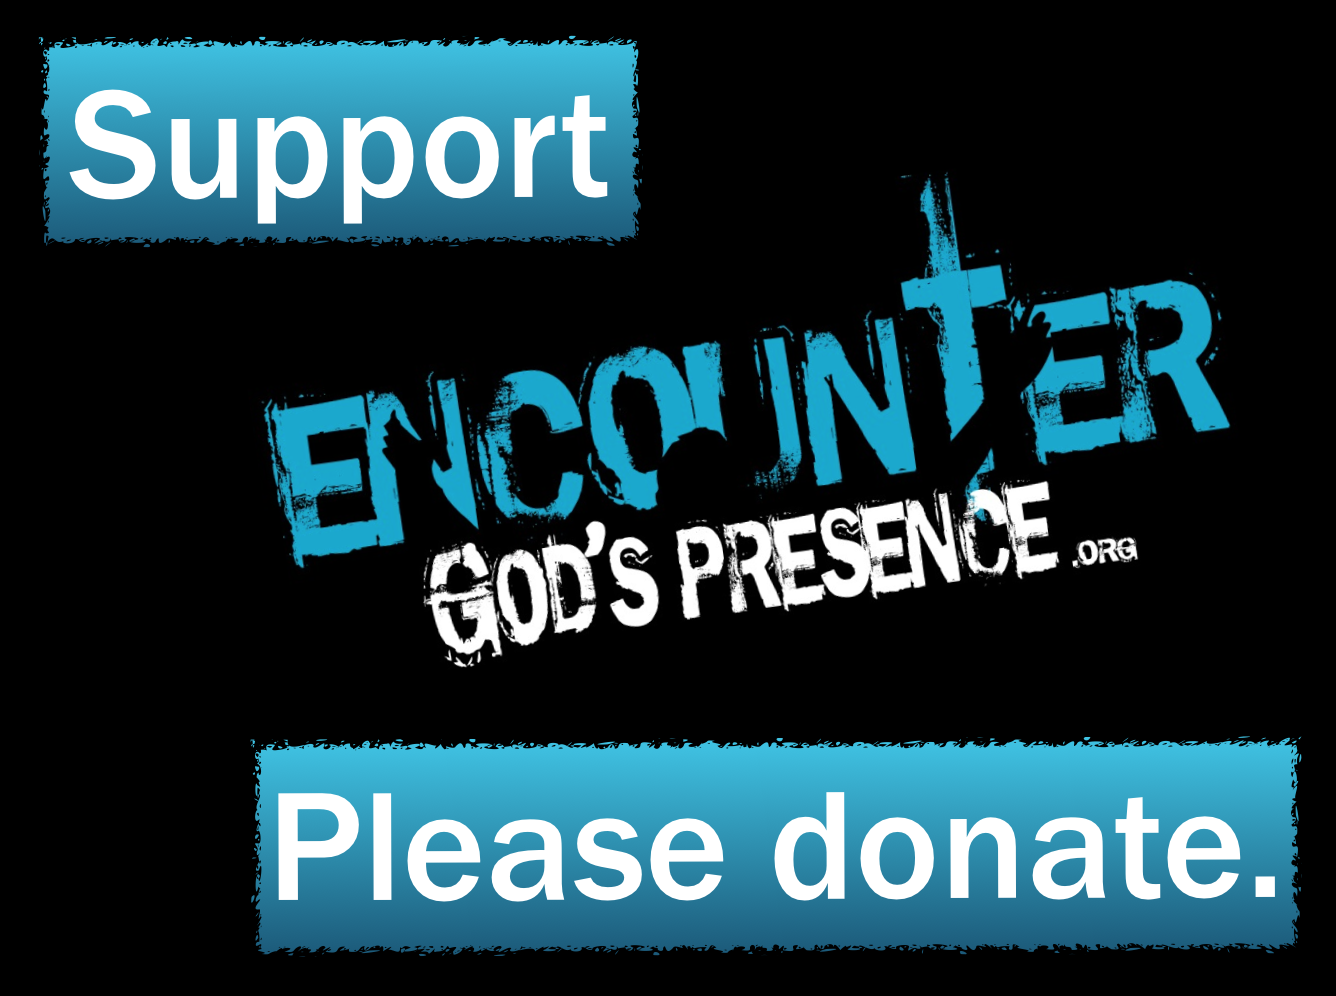 Donate & support Encounter